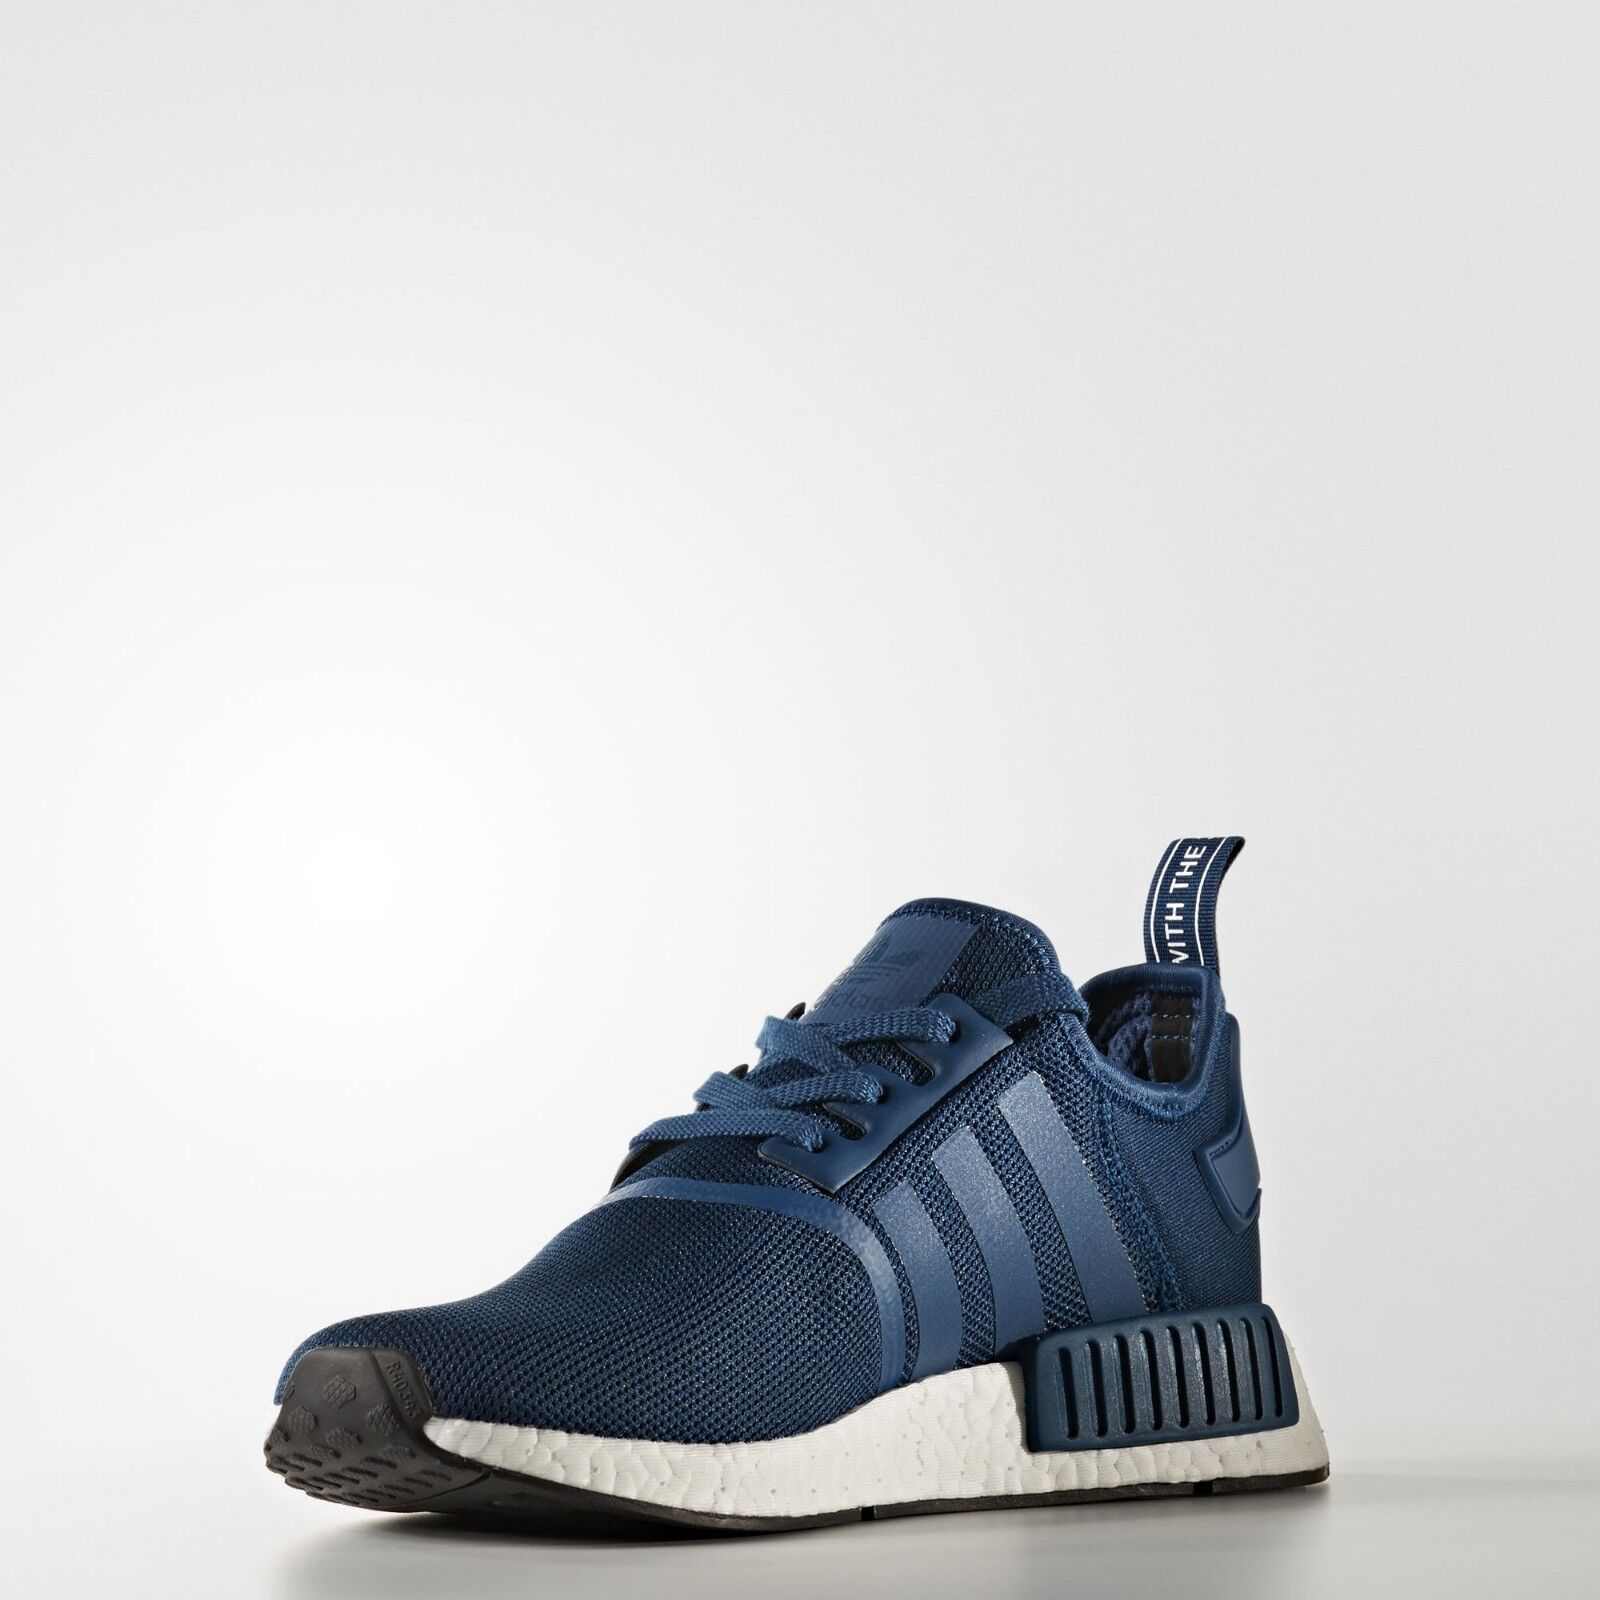 Adidas NMD R1 Nomad Runner Blue Night White Brand New Men Size 5 13 (BY3016)